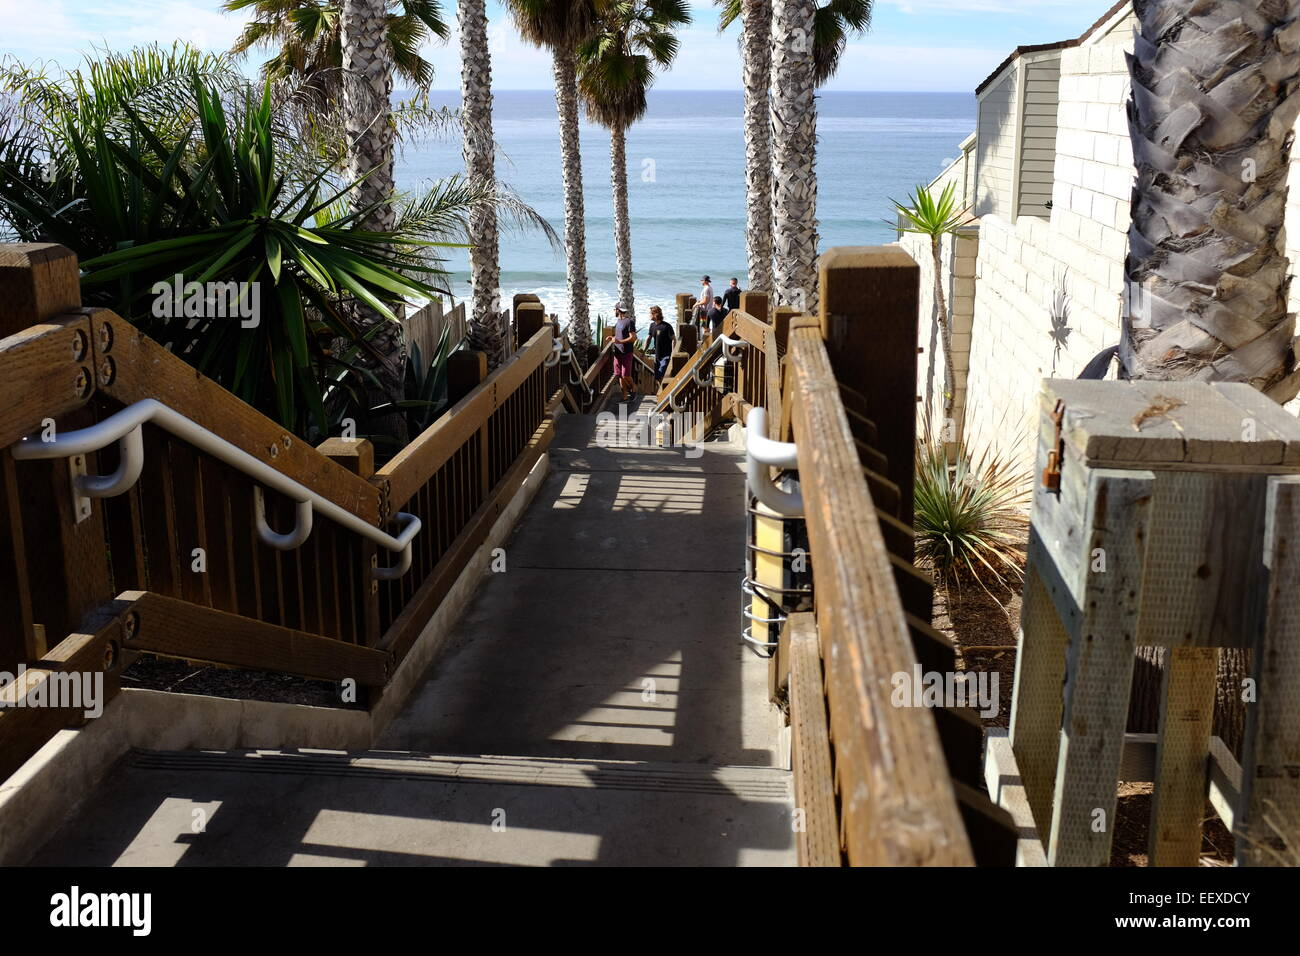 The Stairs And Surfing At The Grandview Beach Access In Encinitas, CA